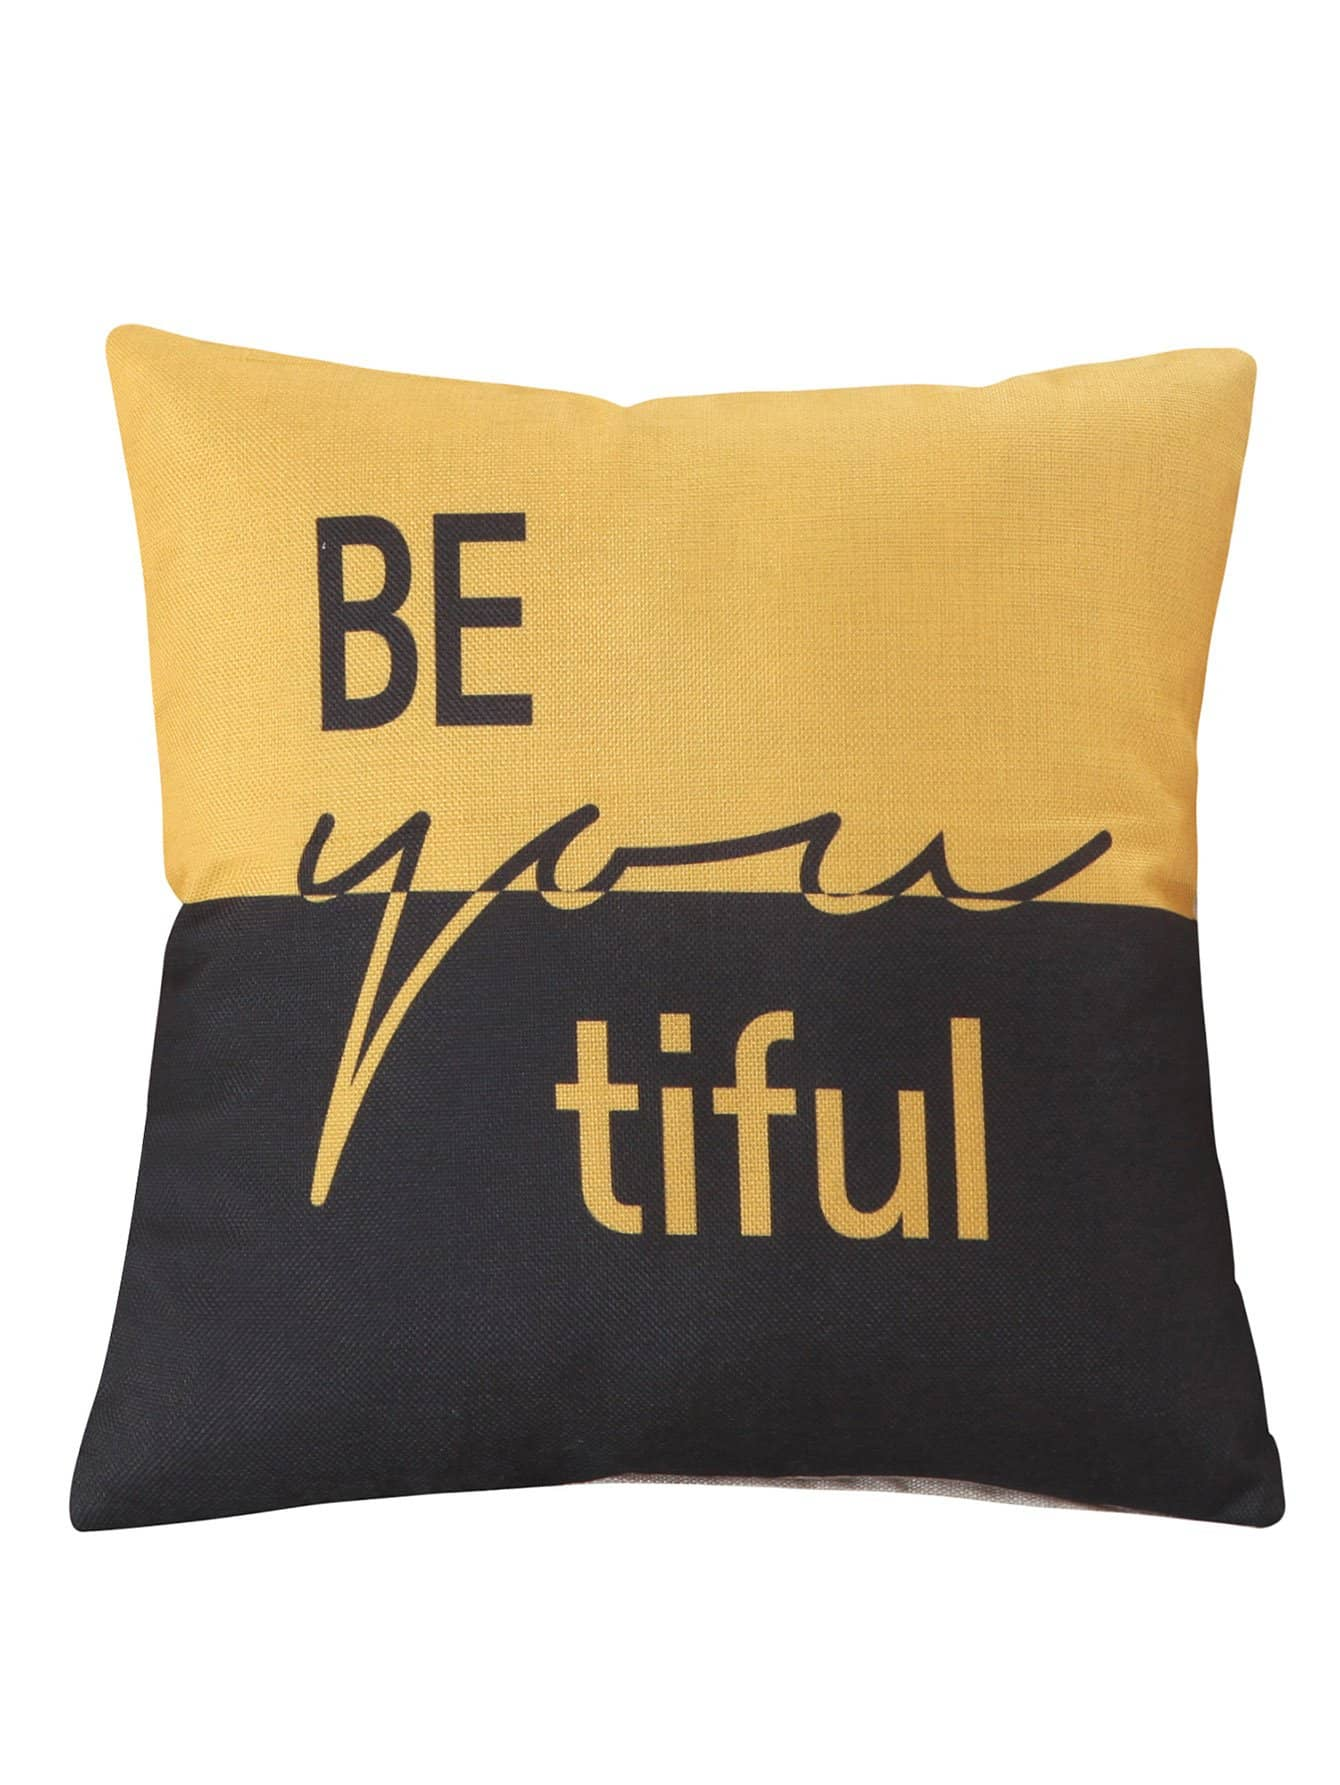 Contrast Letter Pillowcase Cover 1PC